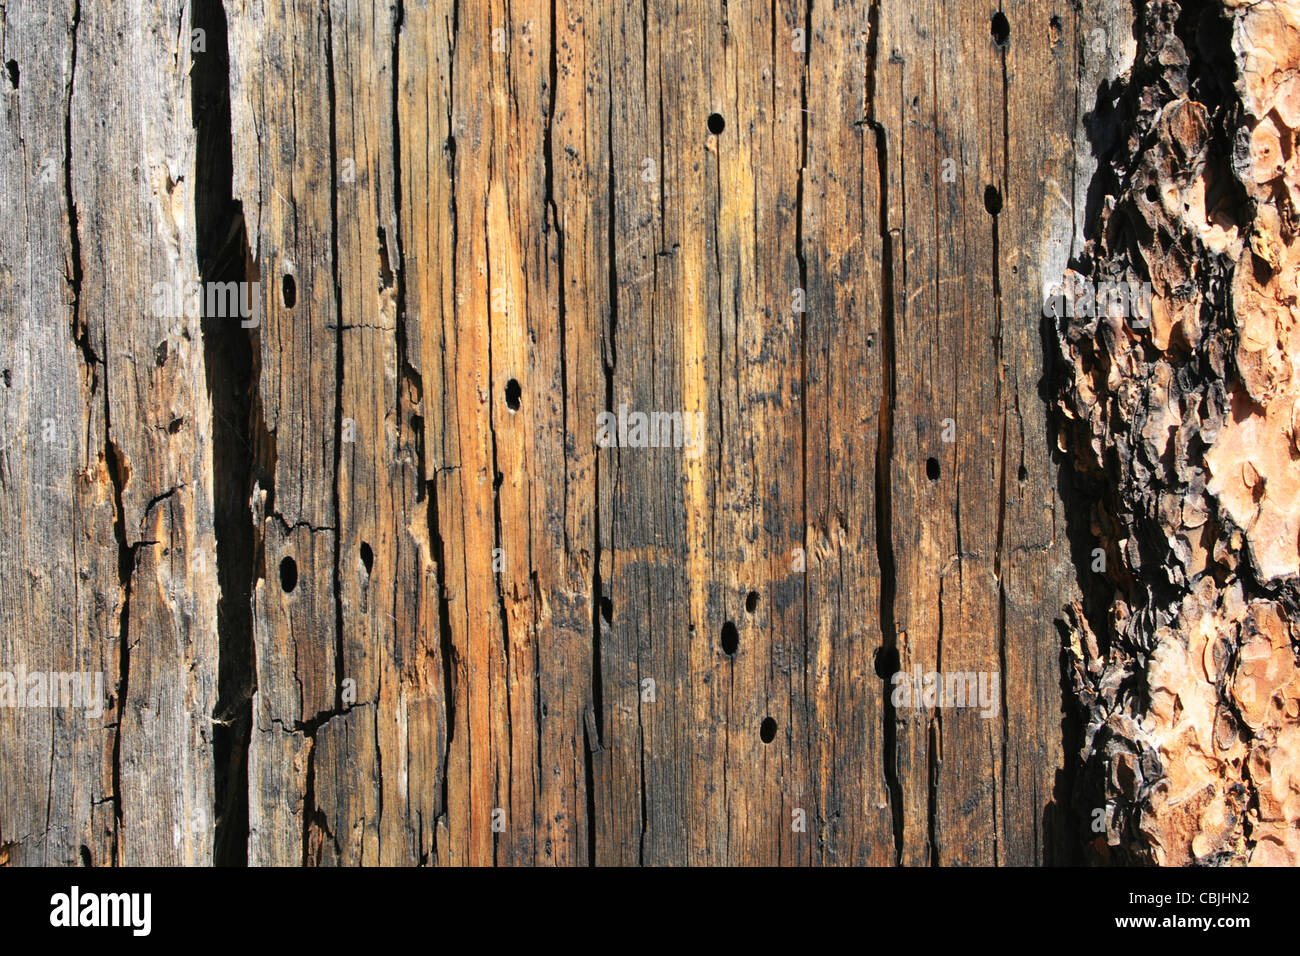 splitting dead pine tree trunk detail with insect boring and bark - Stock Image